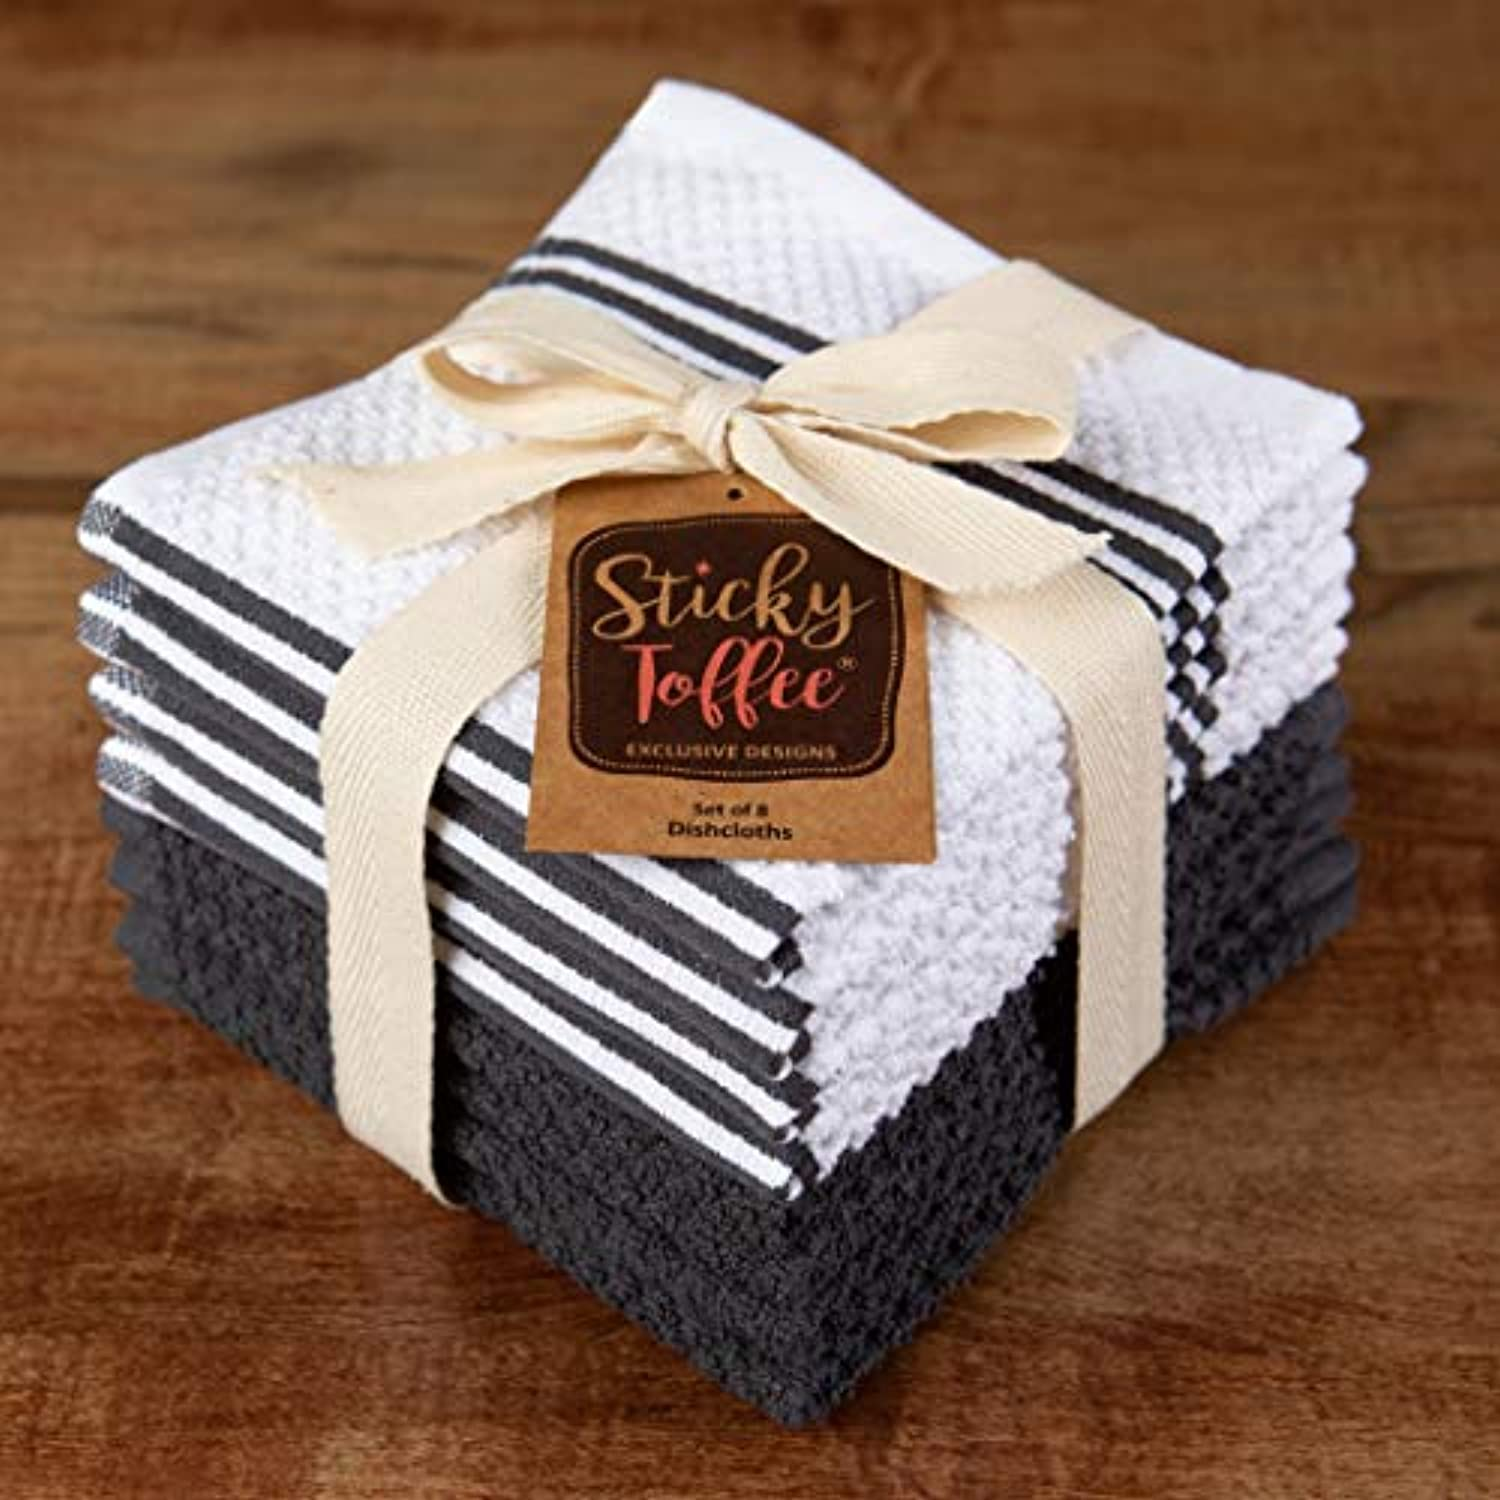 Classier: Buy Sticky Toffee Sticky Toffee Cotton Terry Kitchen Dishcloth, 8 Pack, 12 in x 12 in, Gray Stripe